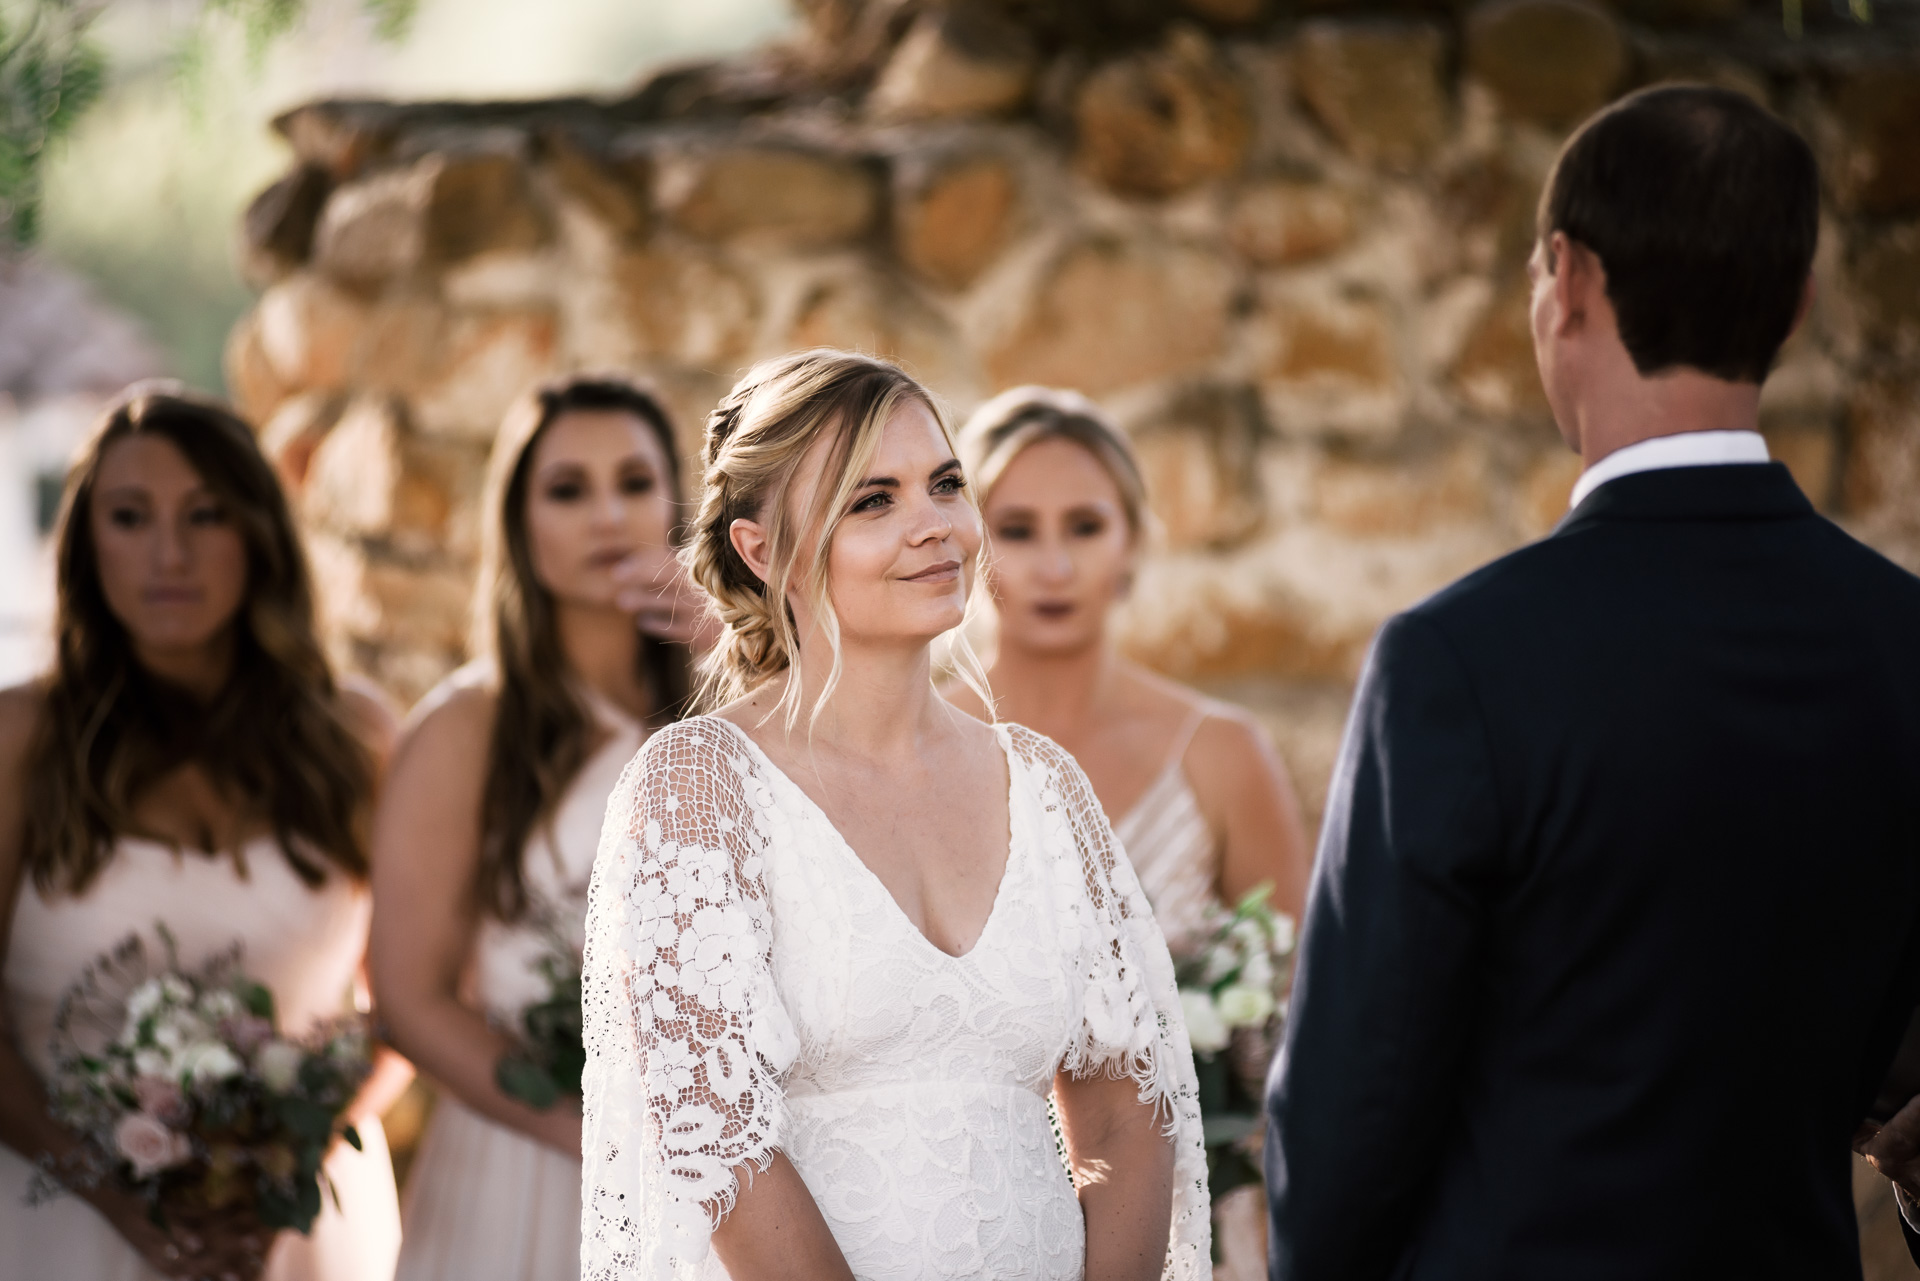 bride looks lovingly at her groom captured by photographer during romantic wedding at the historic Leo Carrillo Ranch in Carlsbad California